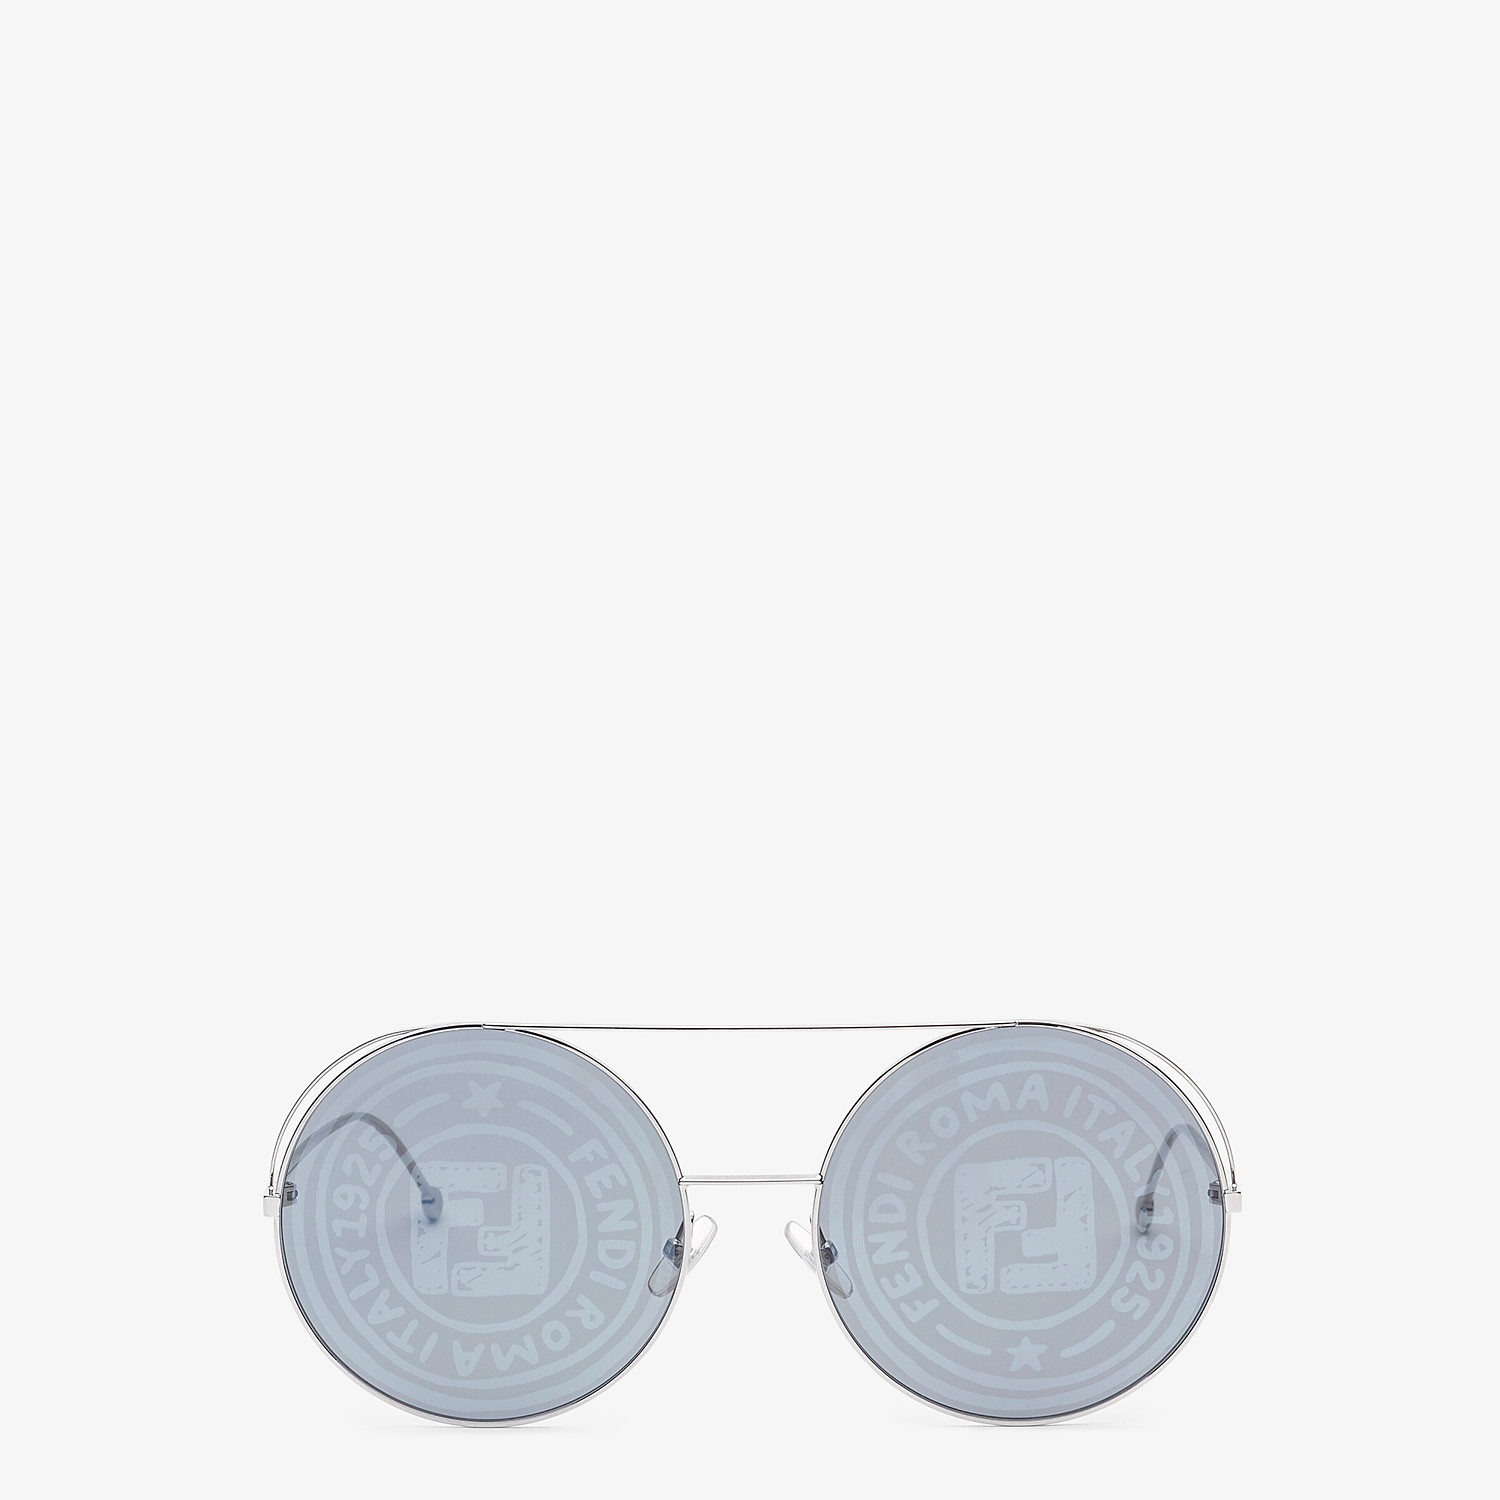 FENDI RUN AWAY - Gafas de sol color paladio - view 1 detail